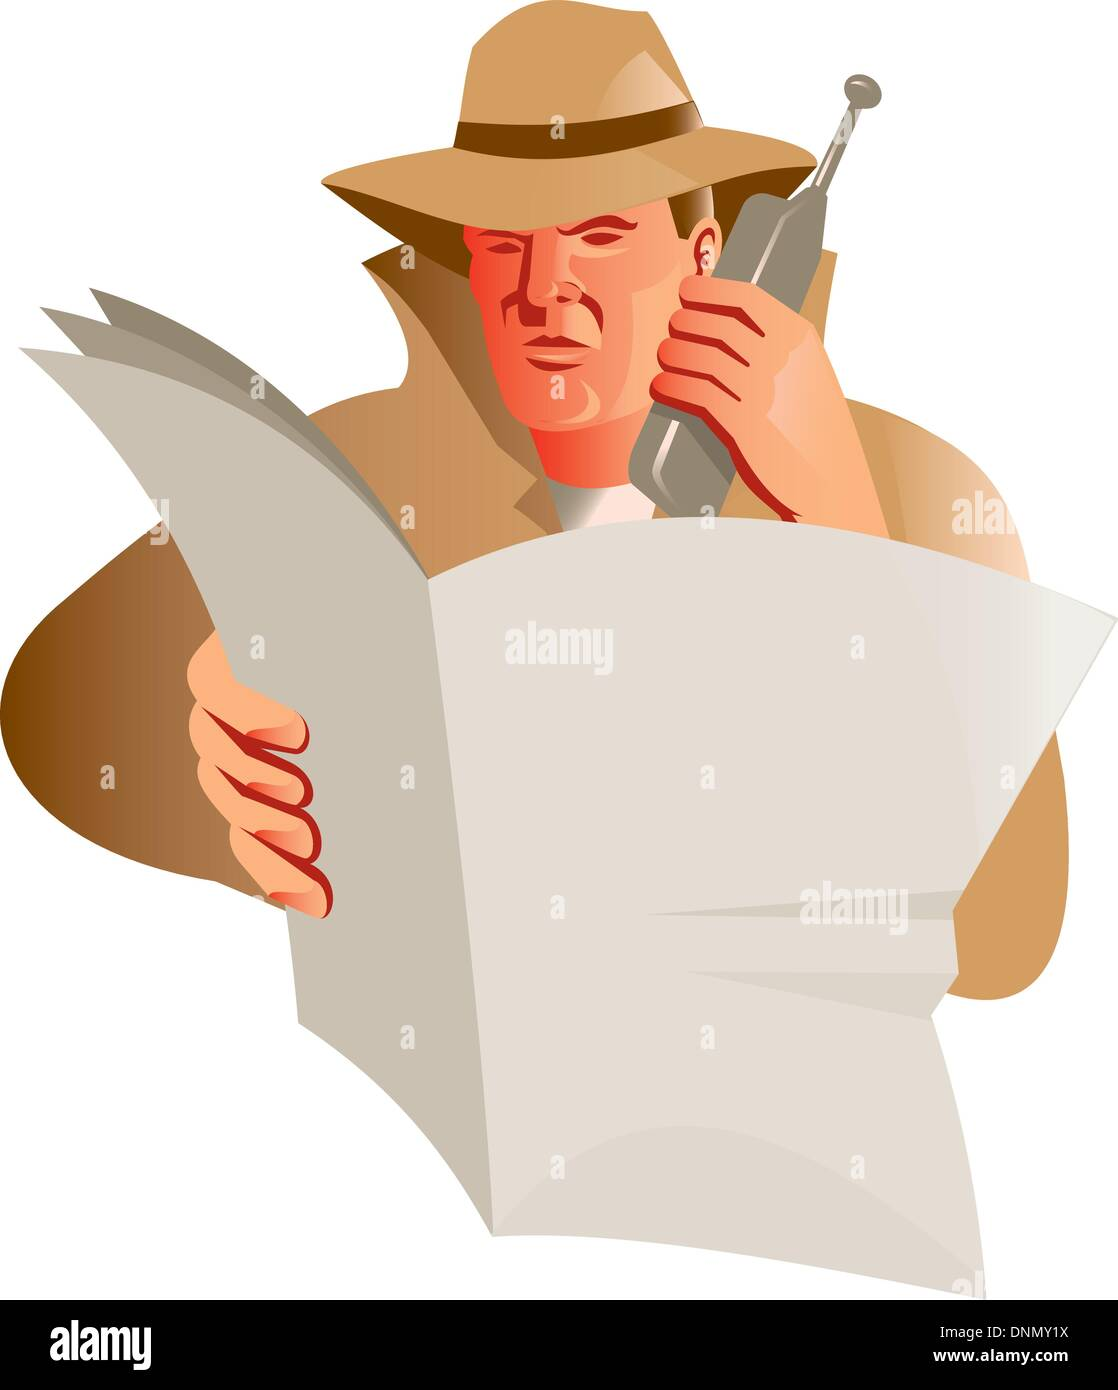 illustration of a male detective using calling cell phone while reading a newspaper on isolated background done in retro style - Stock Image